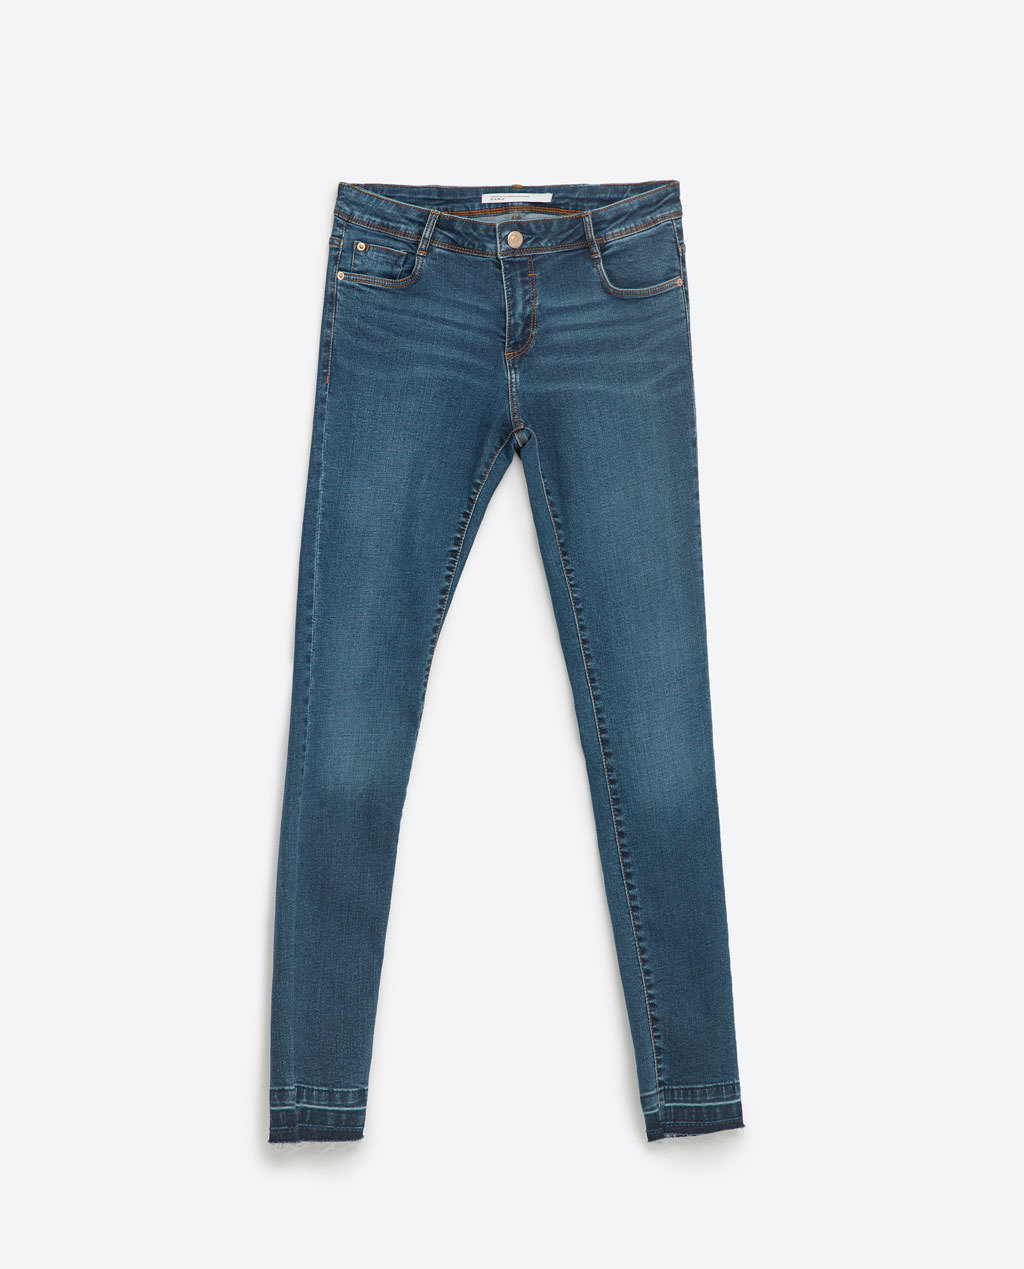 Essential Fits Jeans - style: skinny leg; pattern: plain; pocket detail: traditional 5 pocket; waist: mid/regular rise; predominant colour: denim; occasions: casual, creative work; length: ankle length; fibres: cotton - stretch; jeans detail: whiskering; texture group: denim; pattern type: fabric; season: s/s 2016; wardrobe: basic